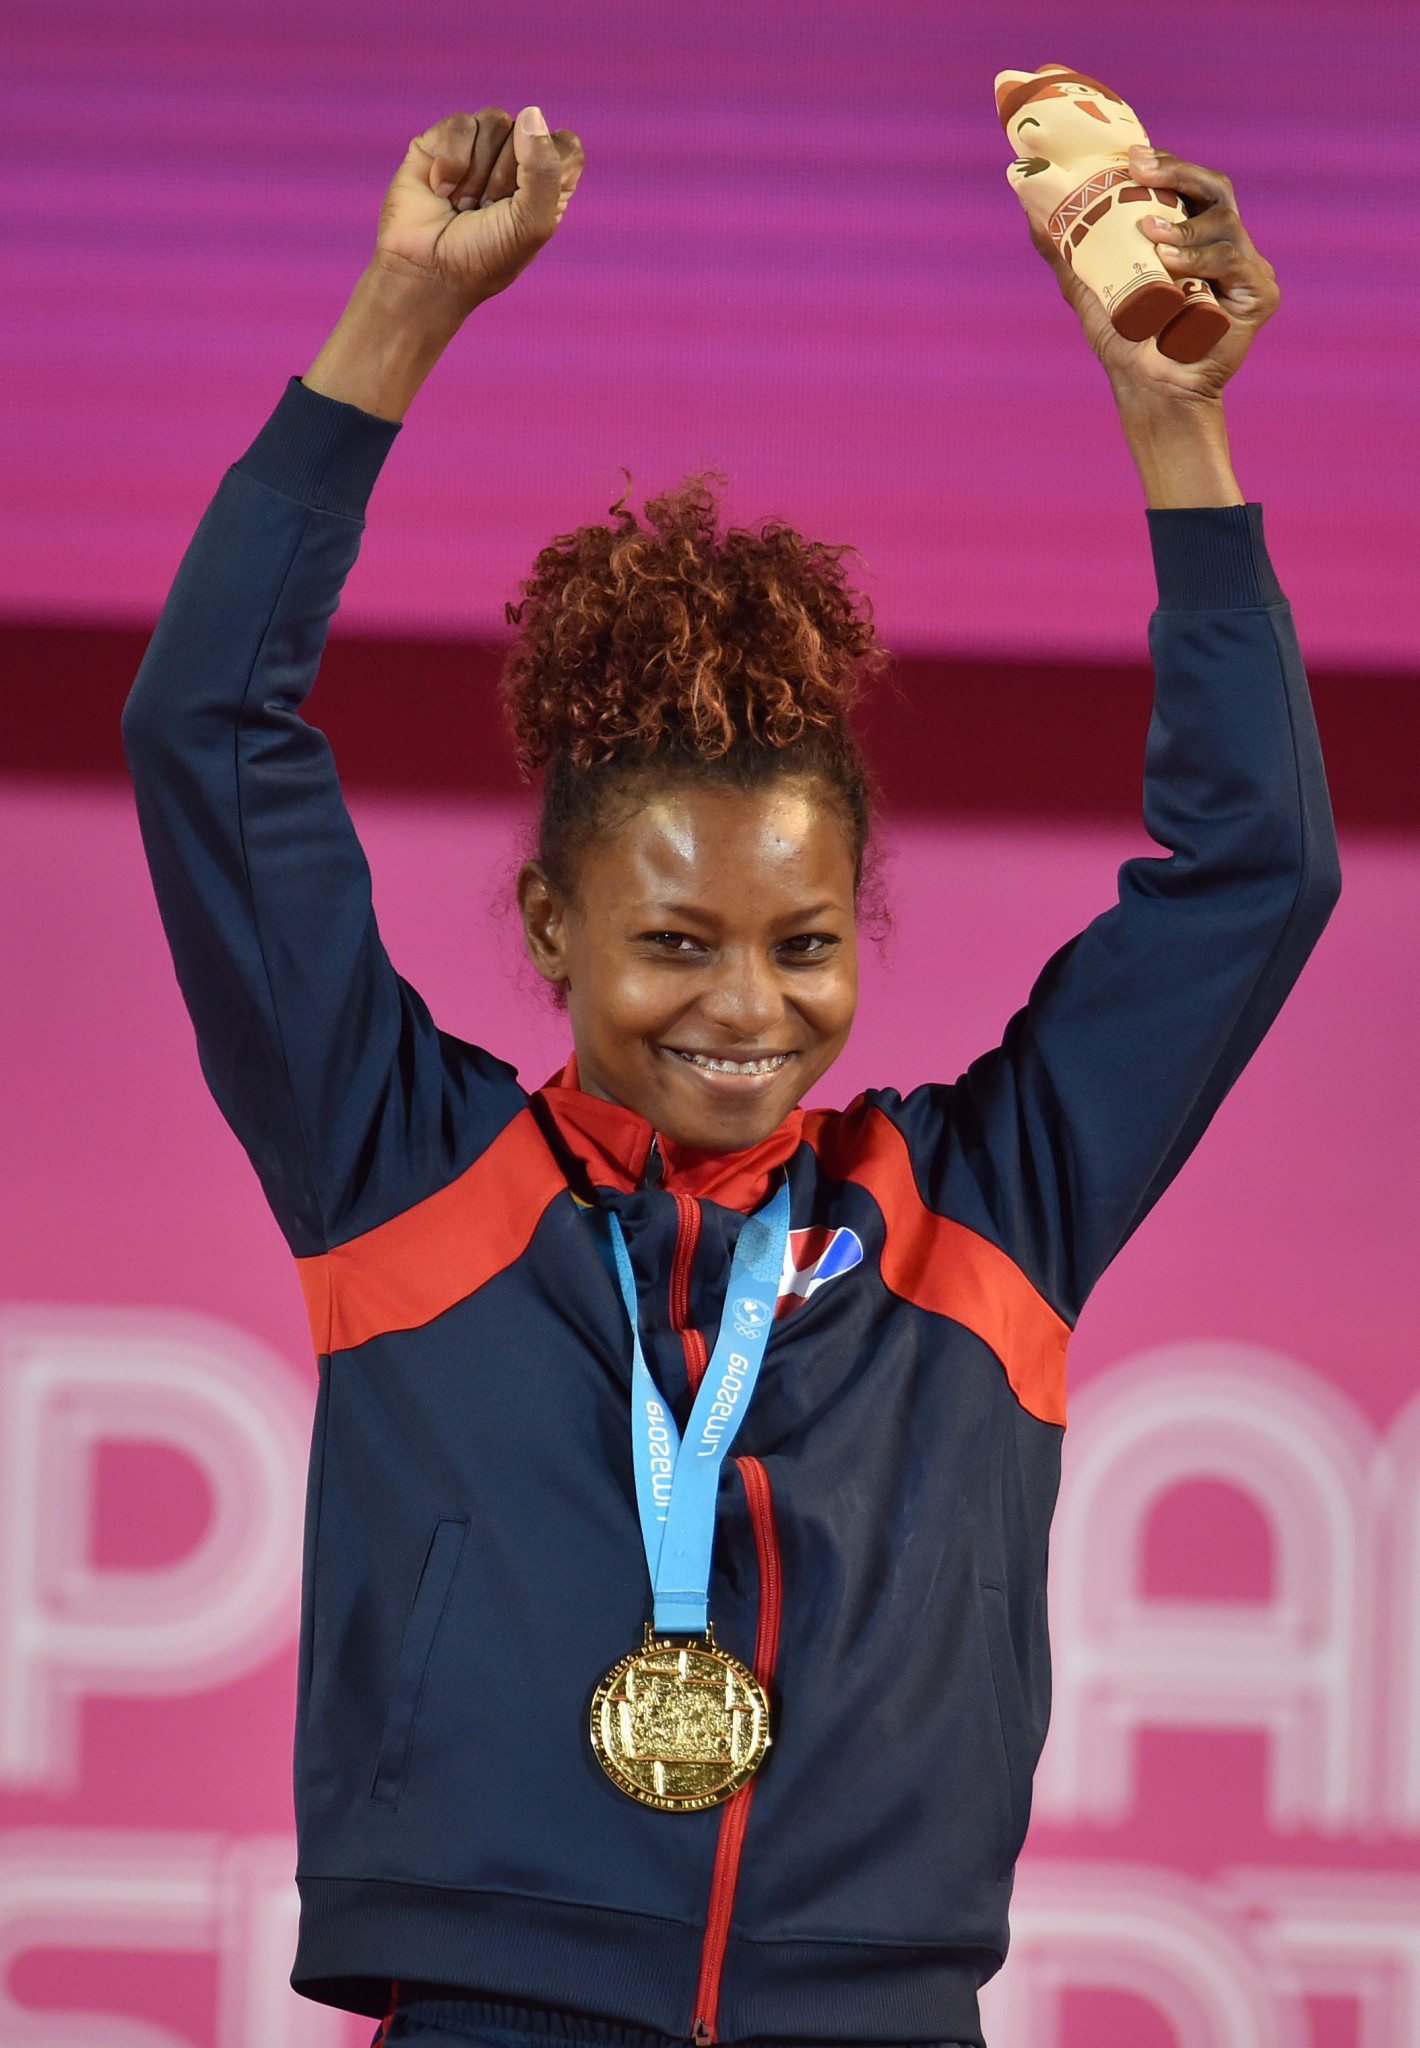 Beatriz Piron of the Dominican Republic could be one of the beneficiaries of the new Tokyo 2020 qualification system ©Getty Images